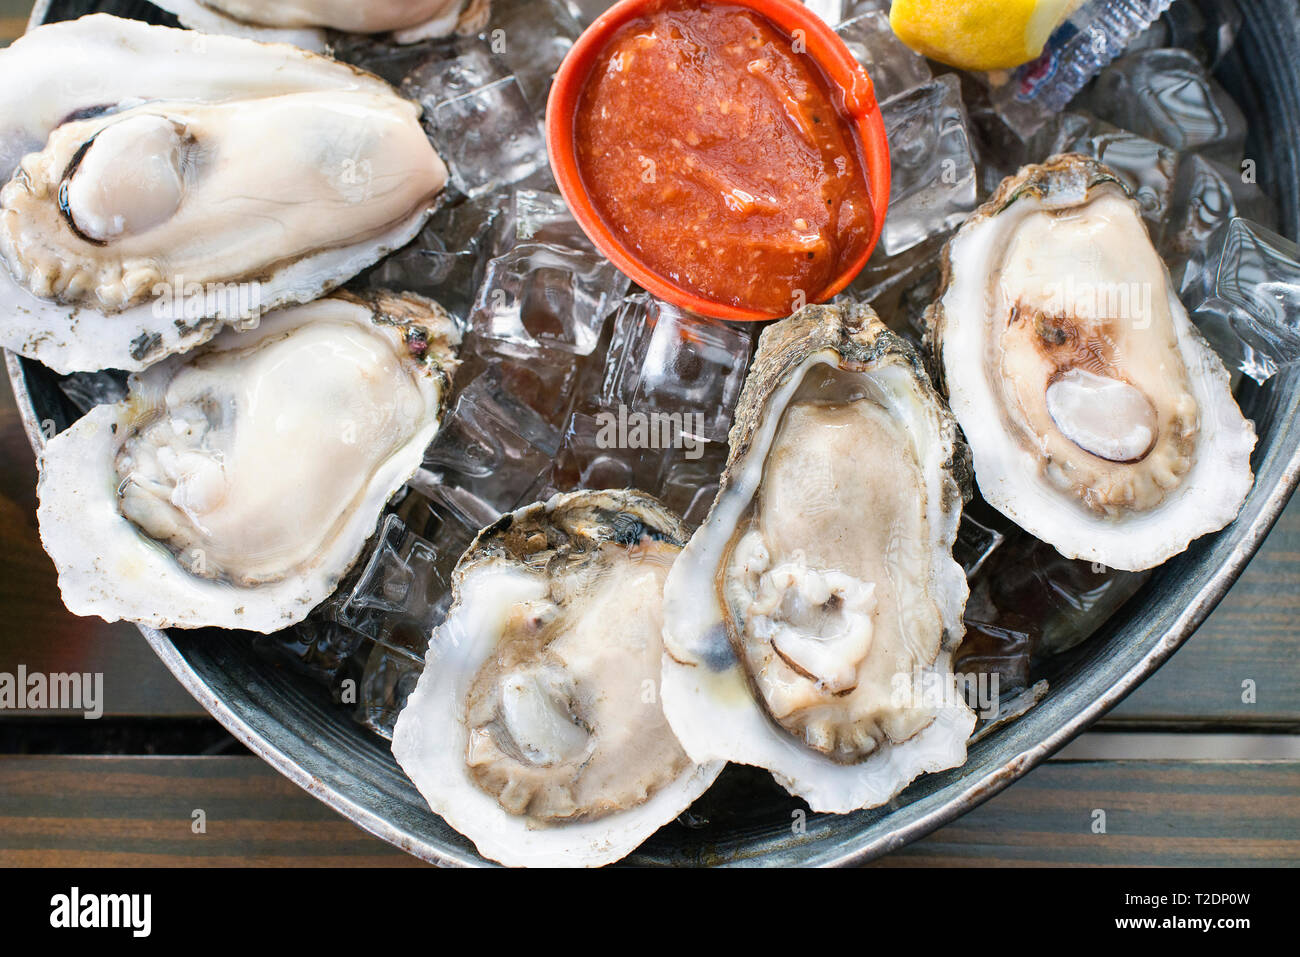 Oysters at Station 6, New Orleans, Louisiana. - Stock Image